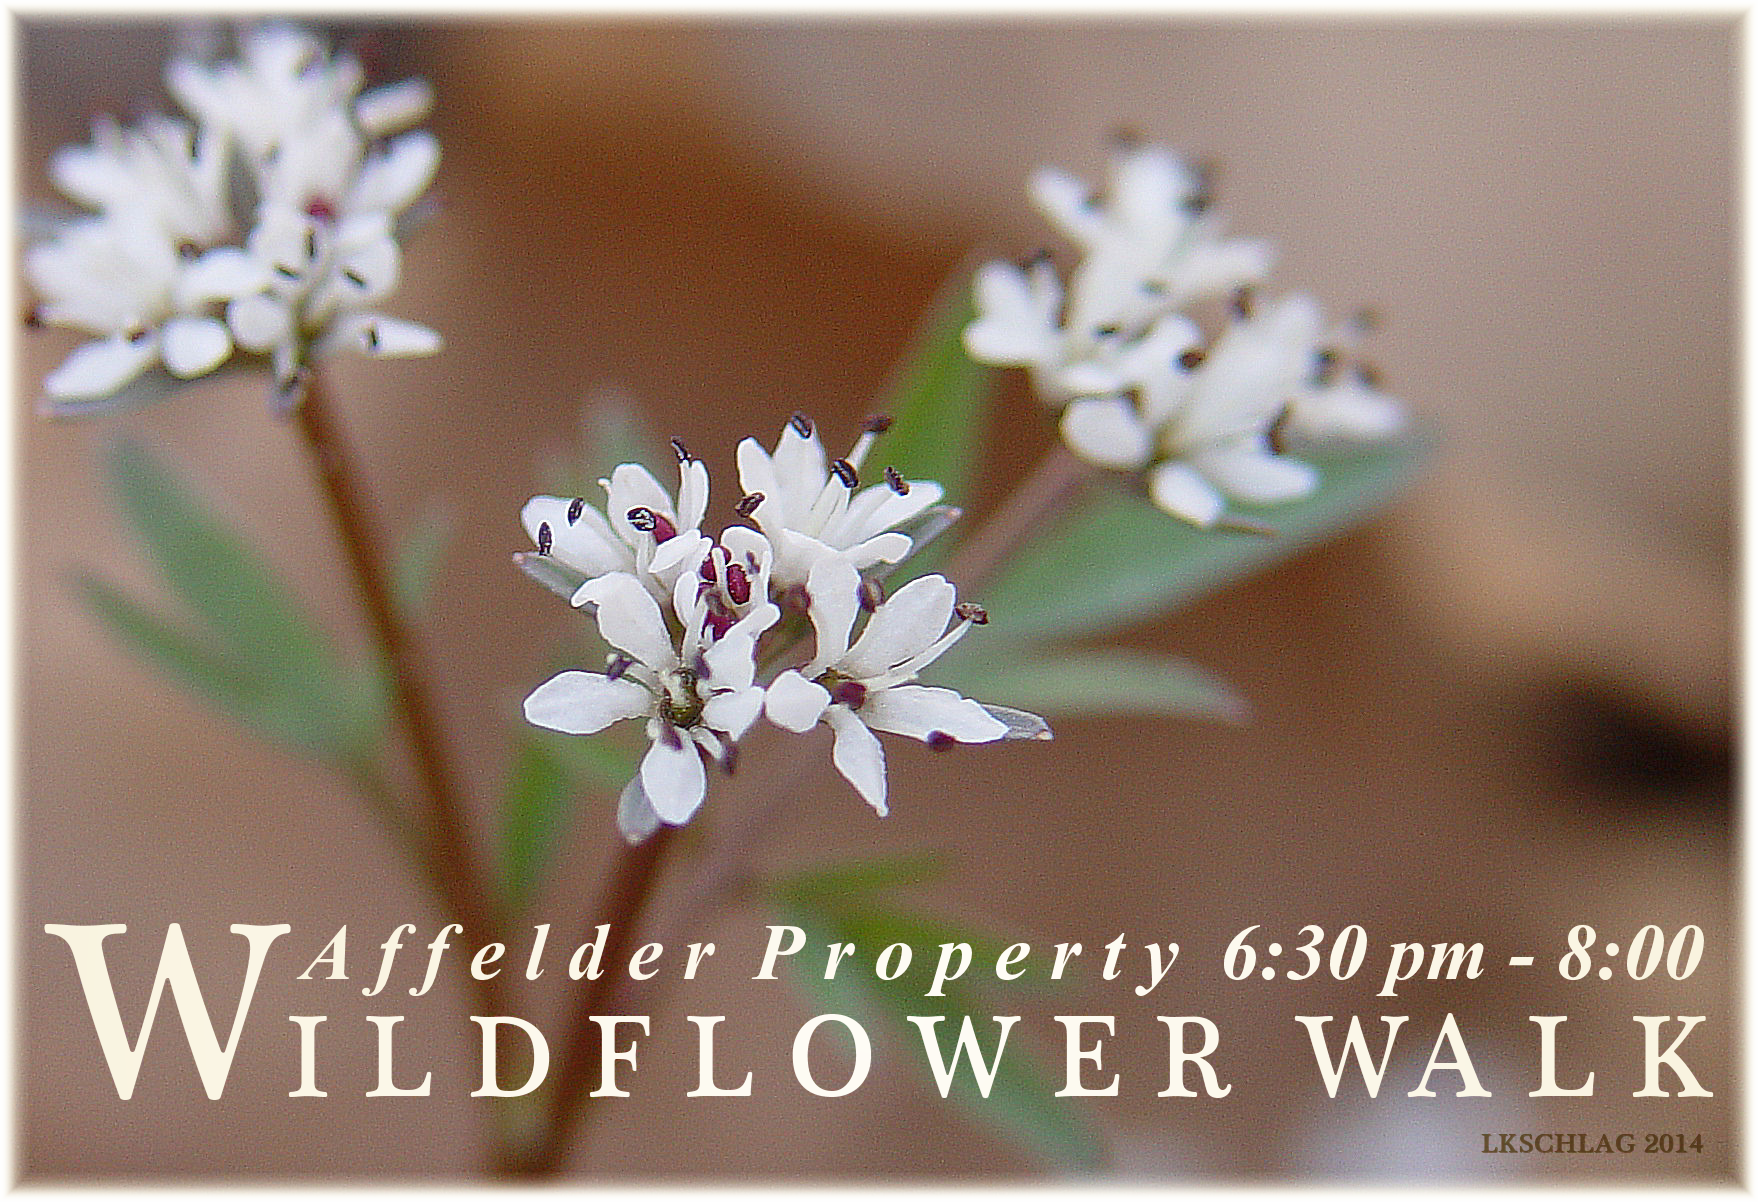 Wildflower Walk program infographic